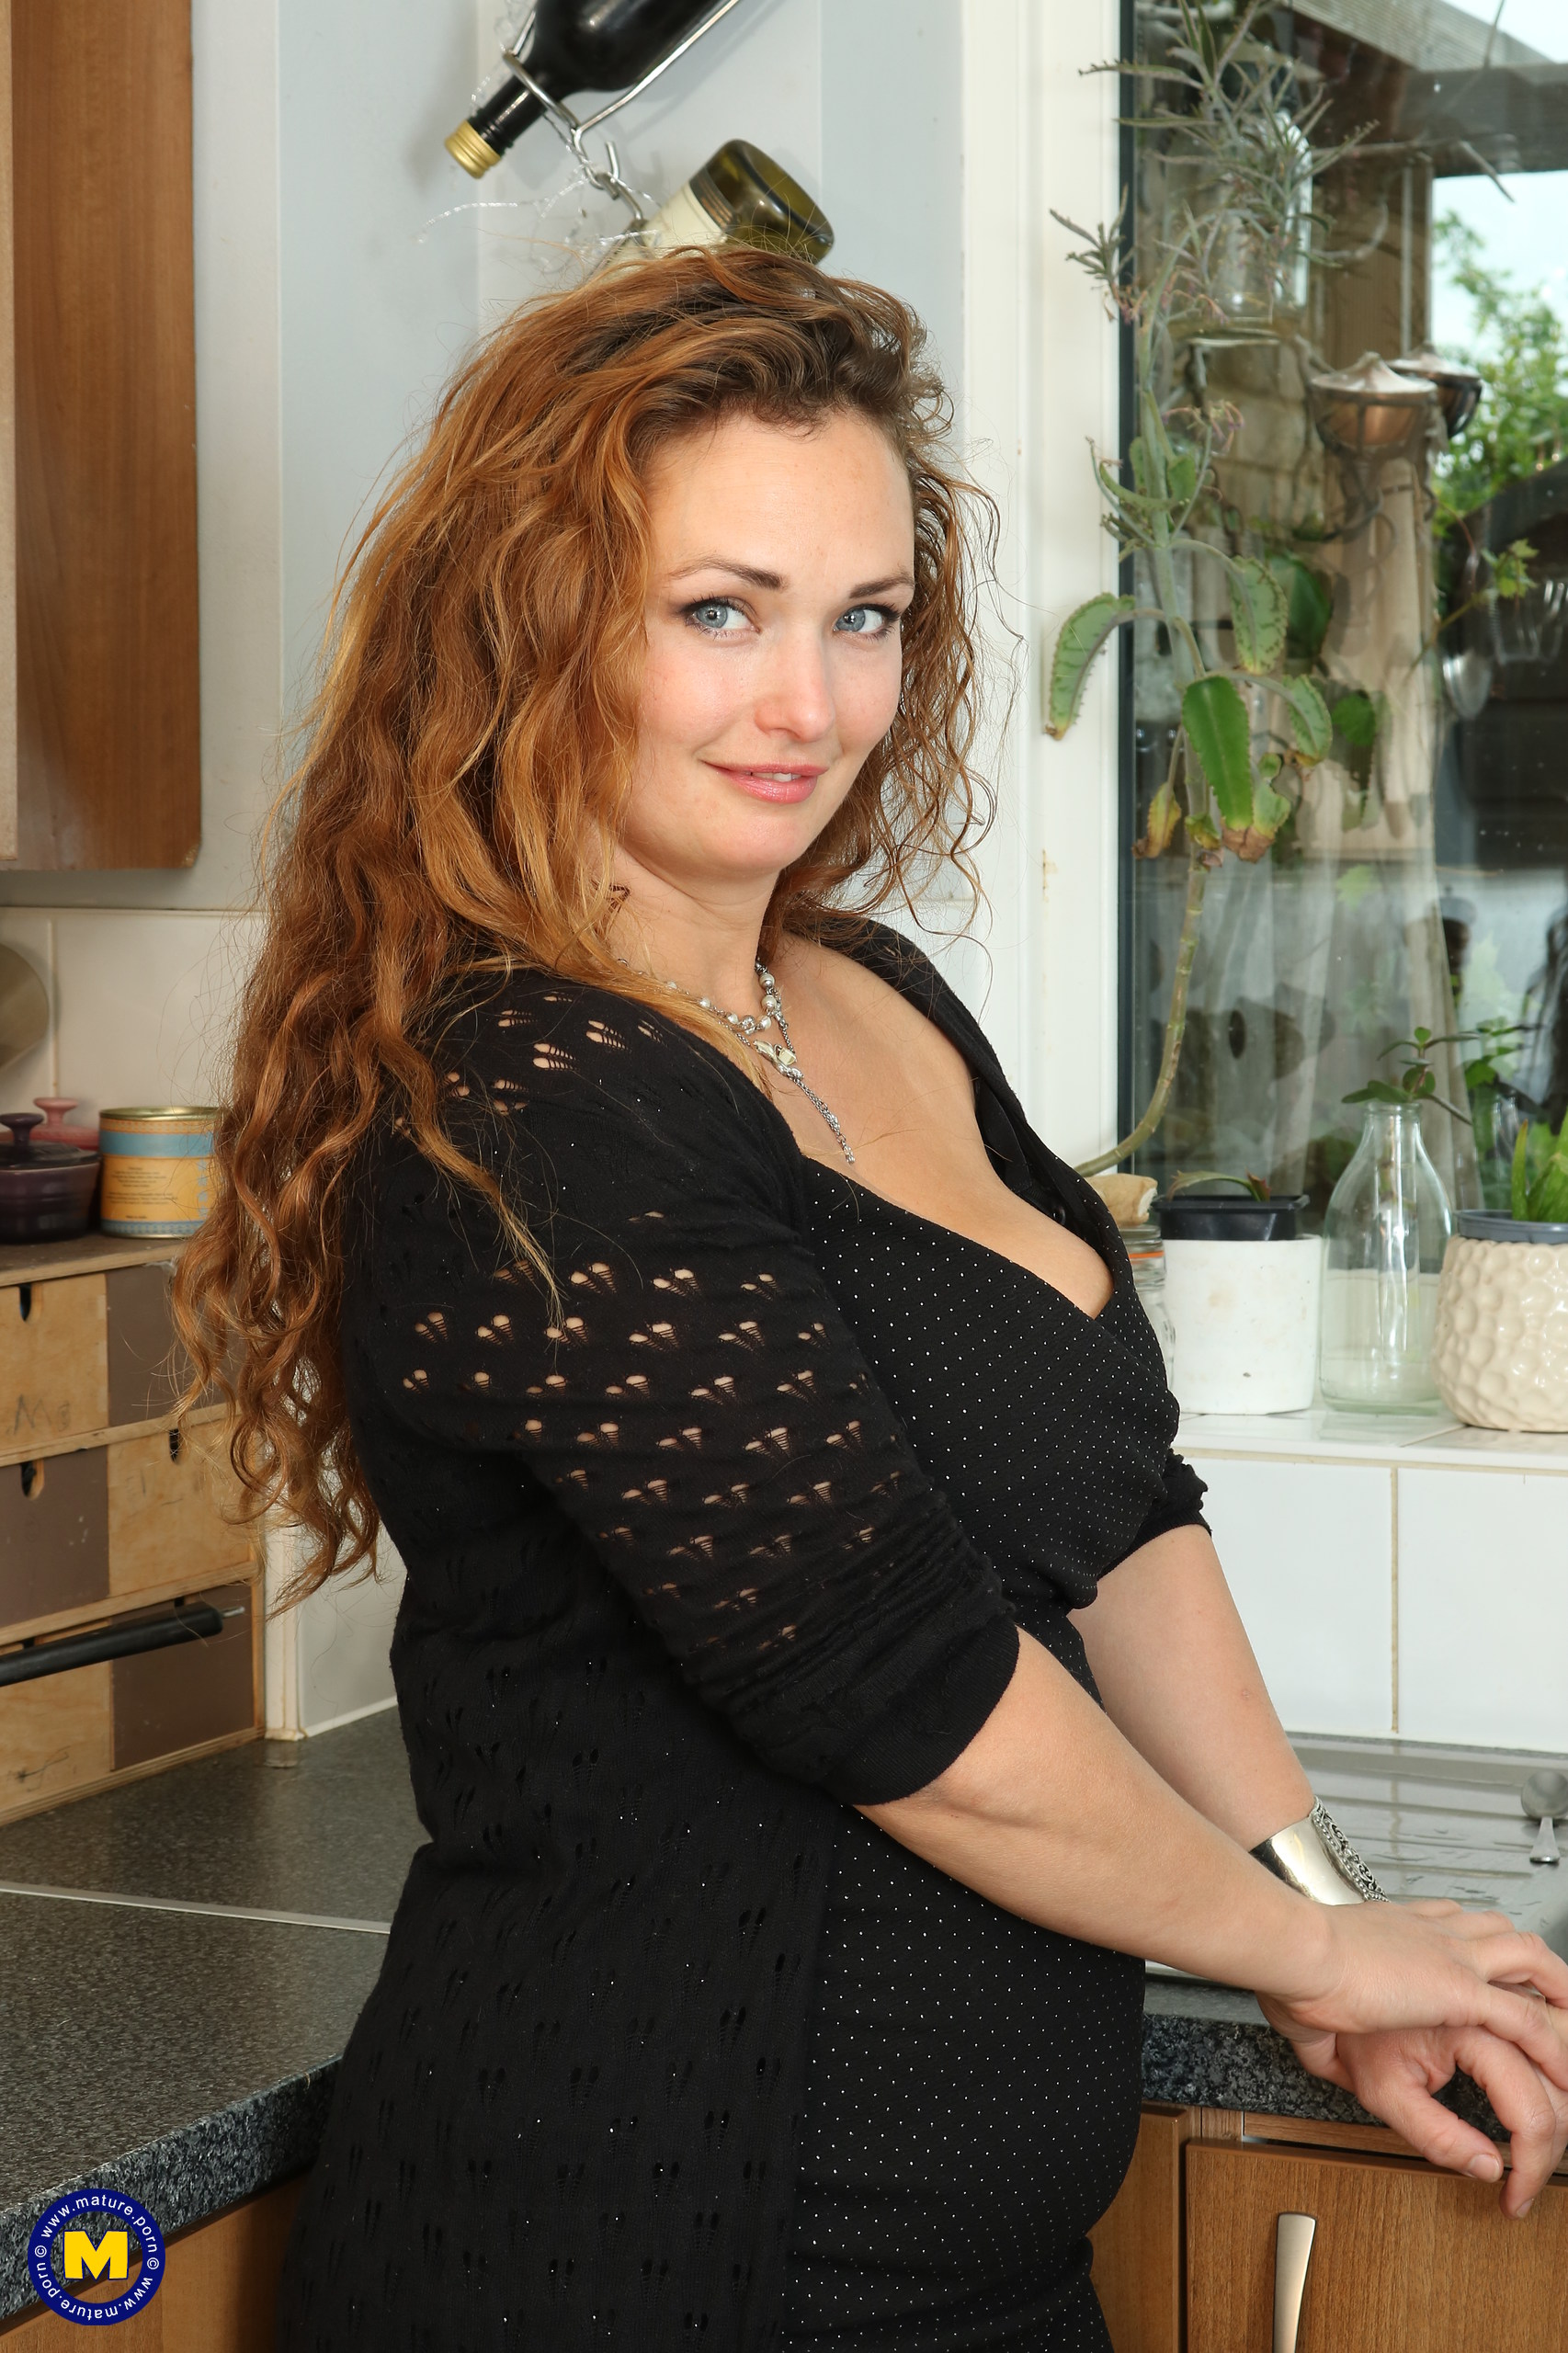 Horny curvy MILF playing with herself in the kitchen Free